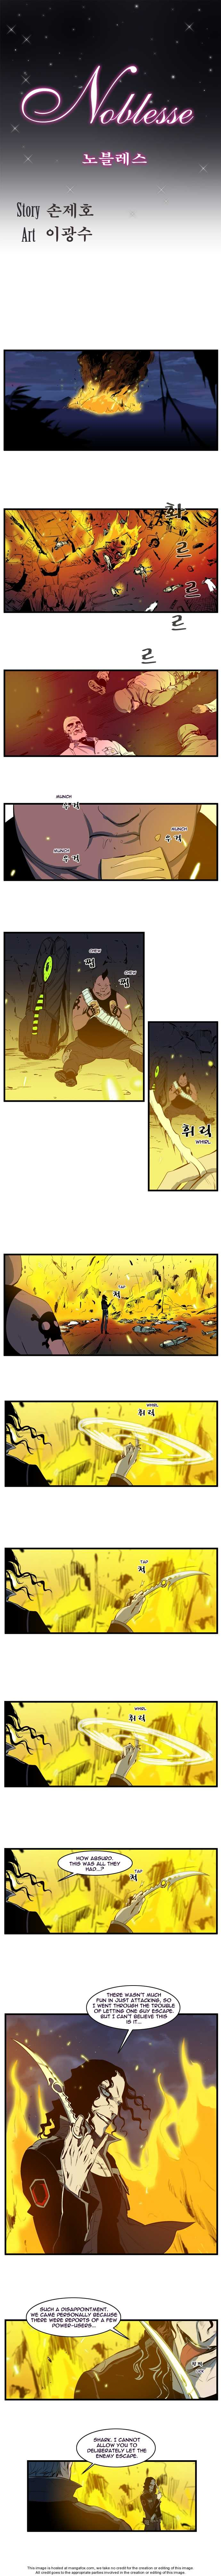 Noblesse 107 Page 1